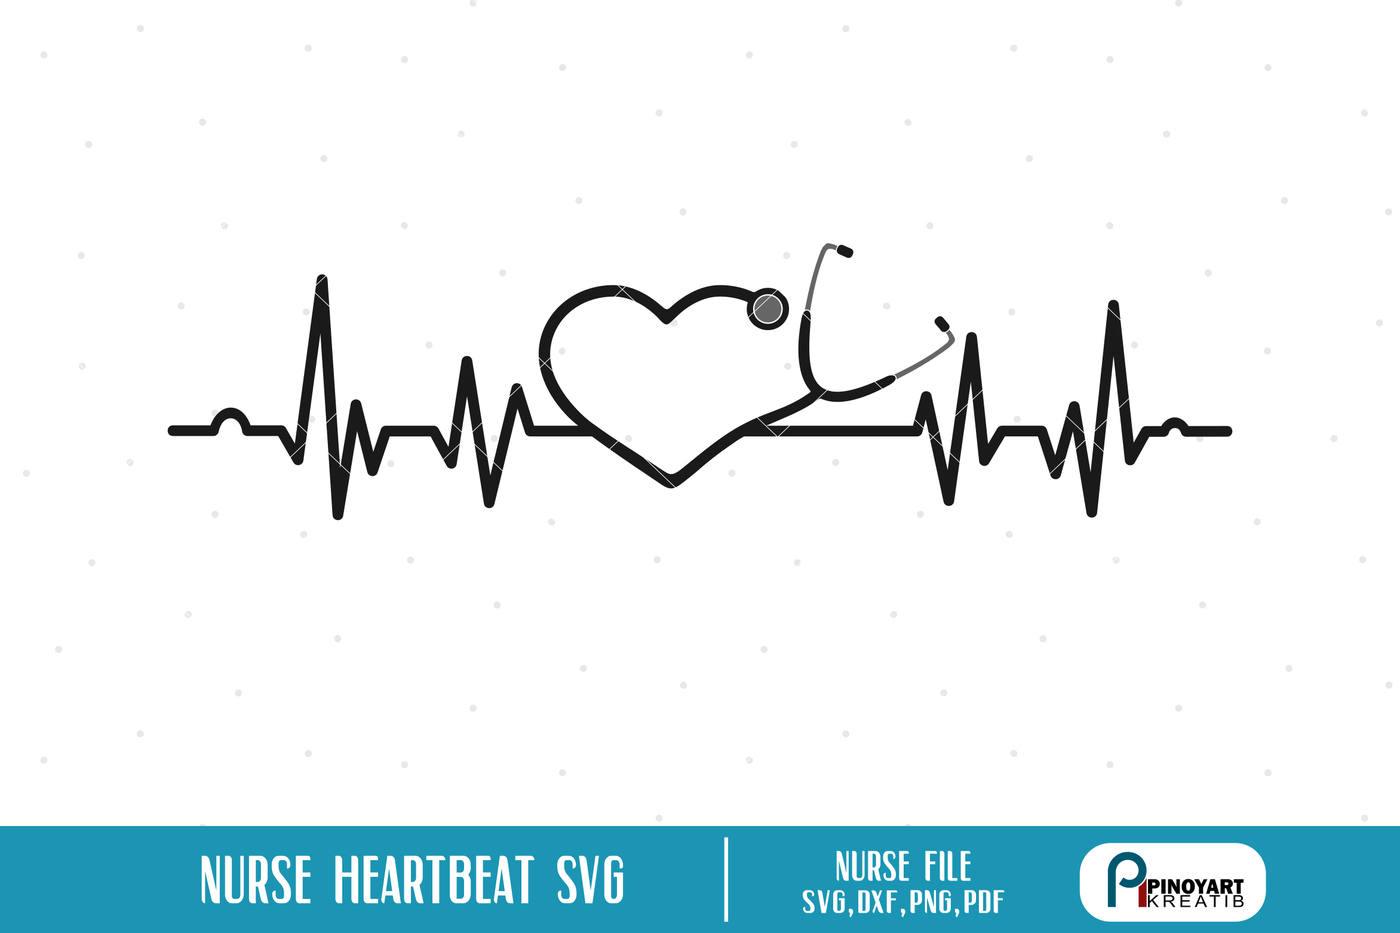 Nurse Heartbeat Svg Nurse Svg Heartbeat Svg Svg Files For